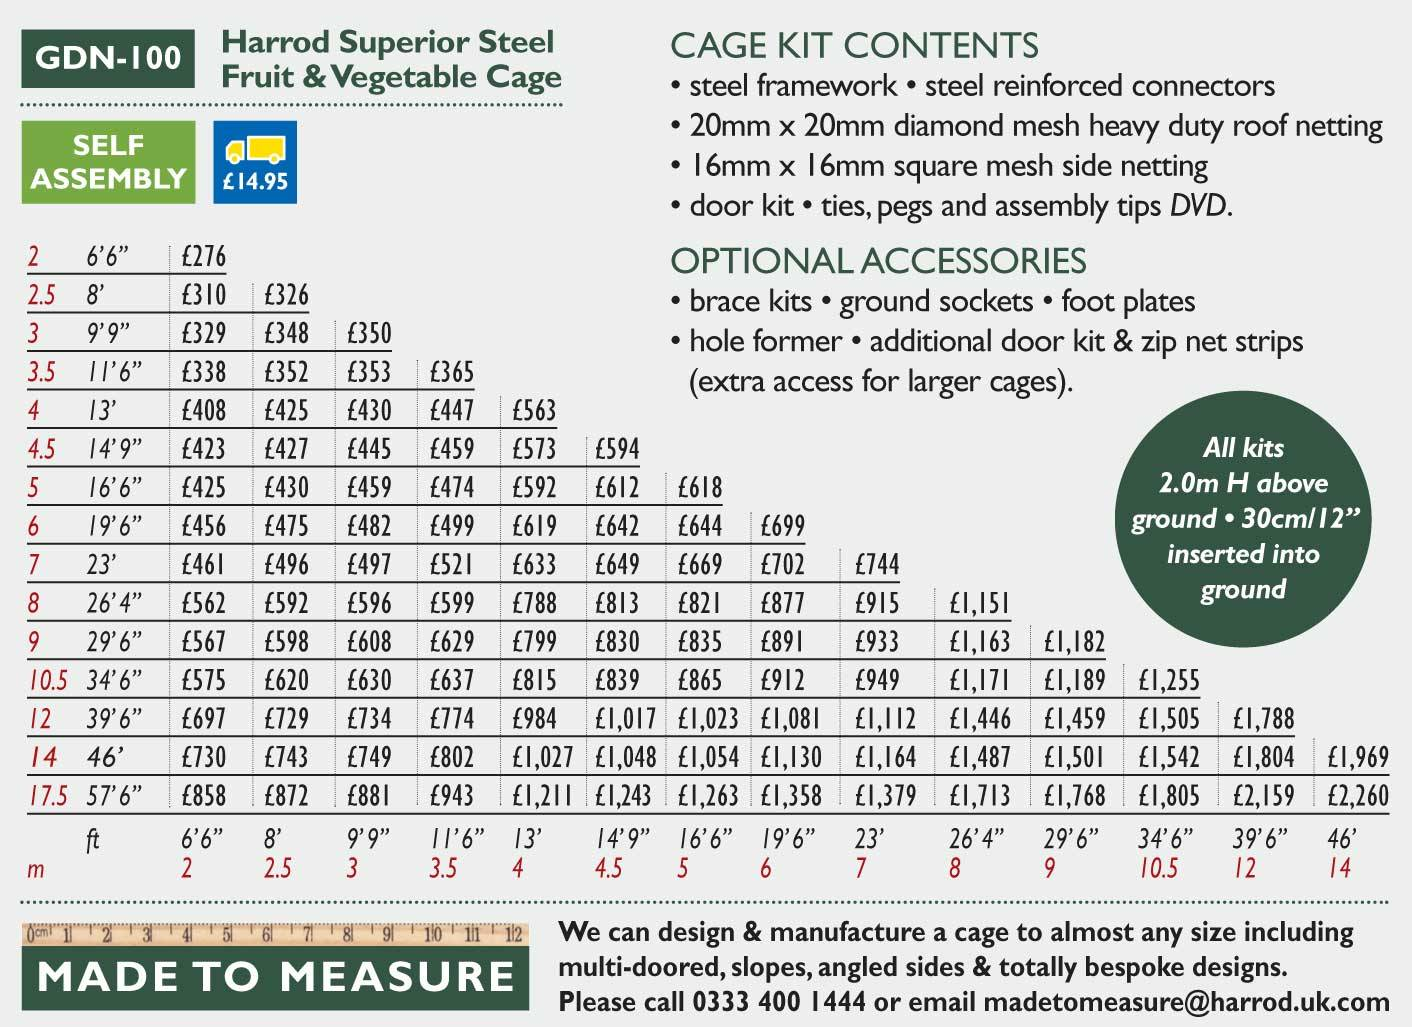 GDN-100 Steel Cage Price Grid 2016